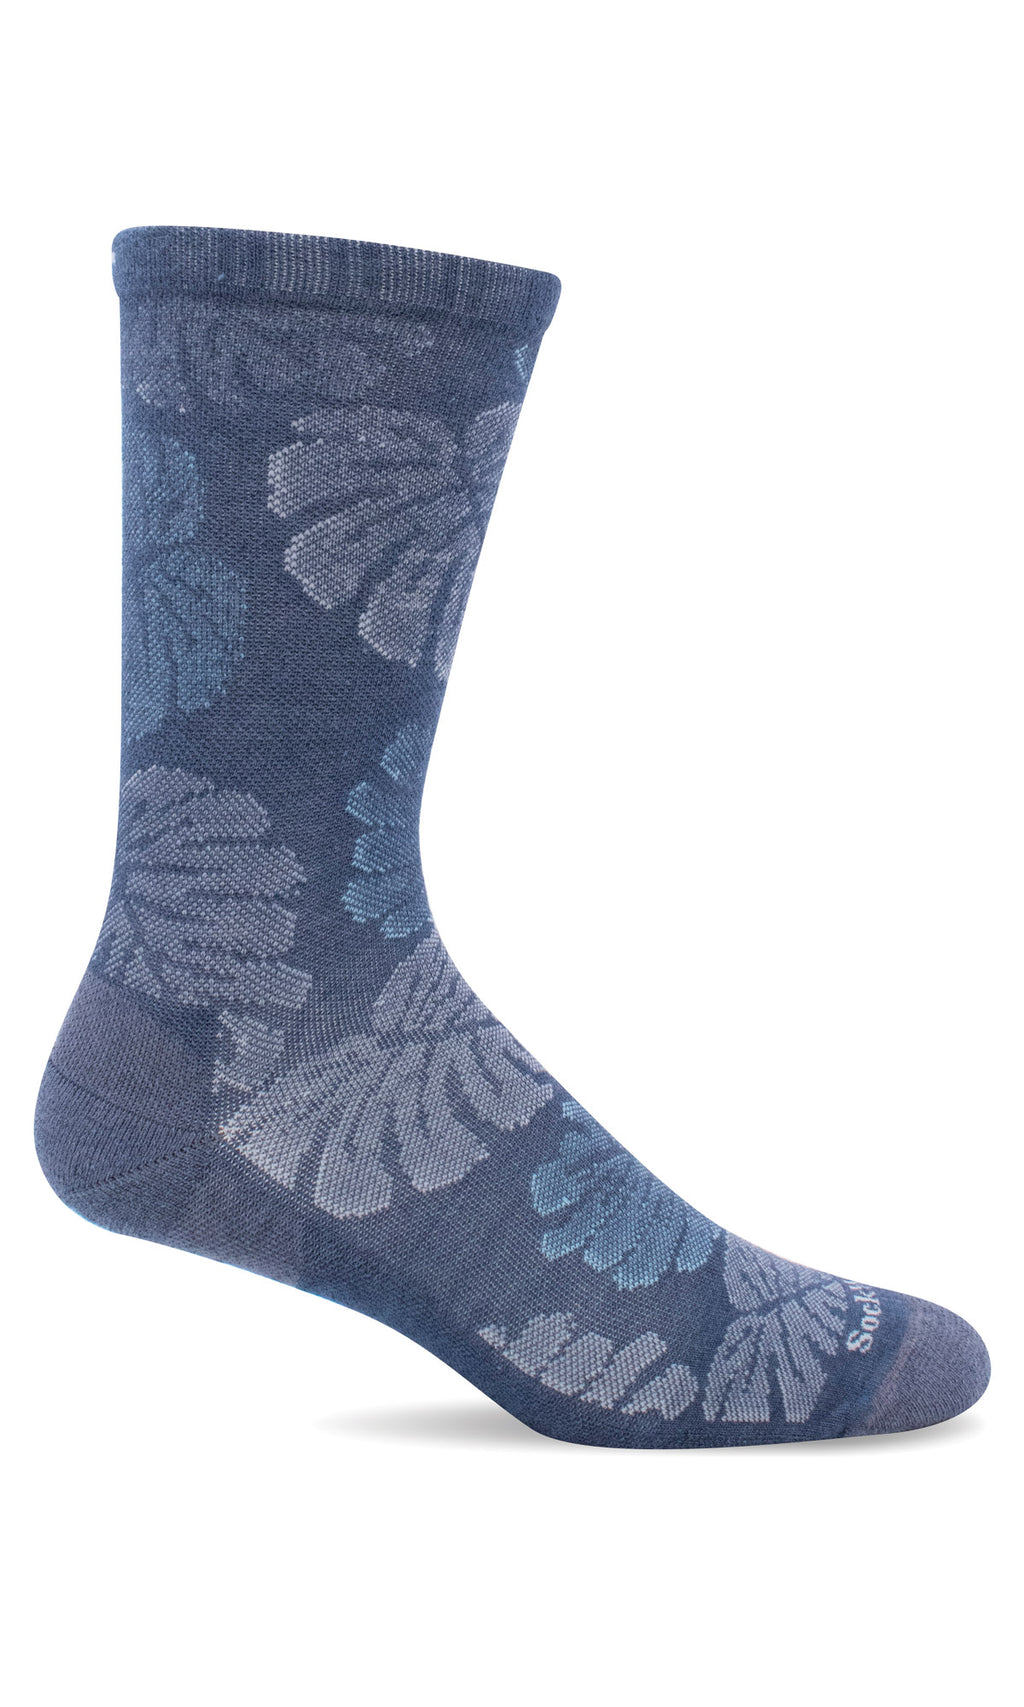 Women's Leafy | Moderate Graduated Compression Socks